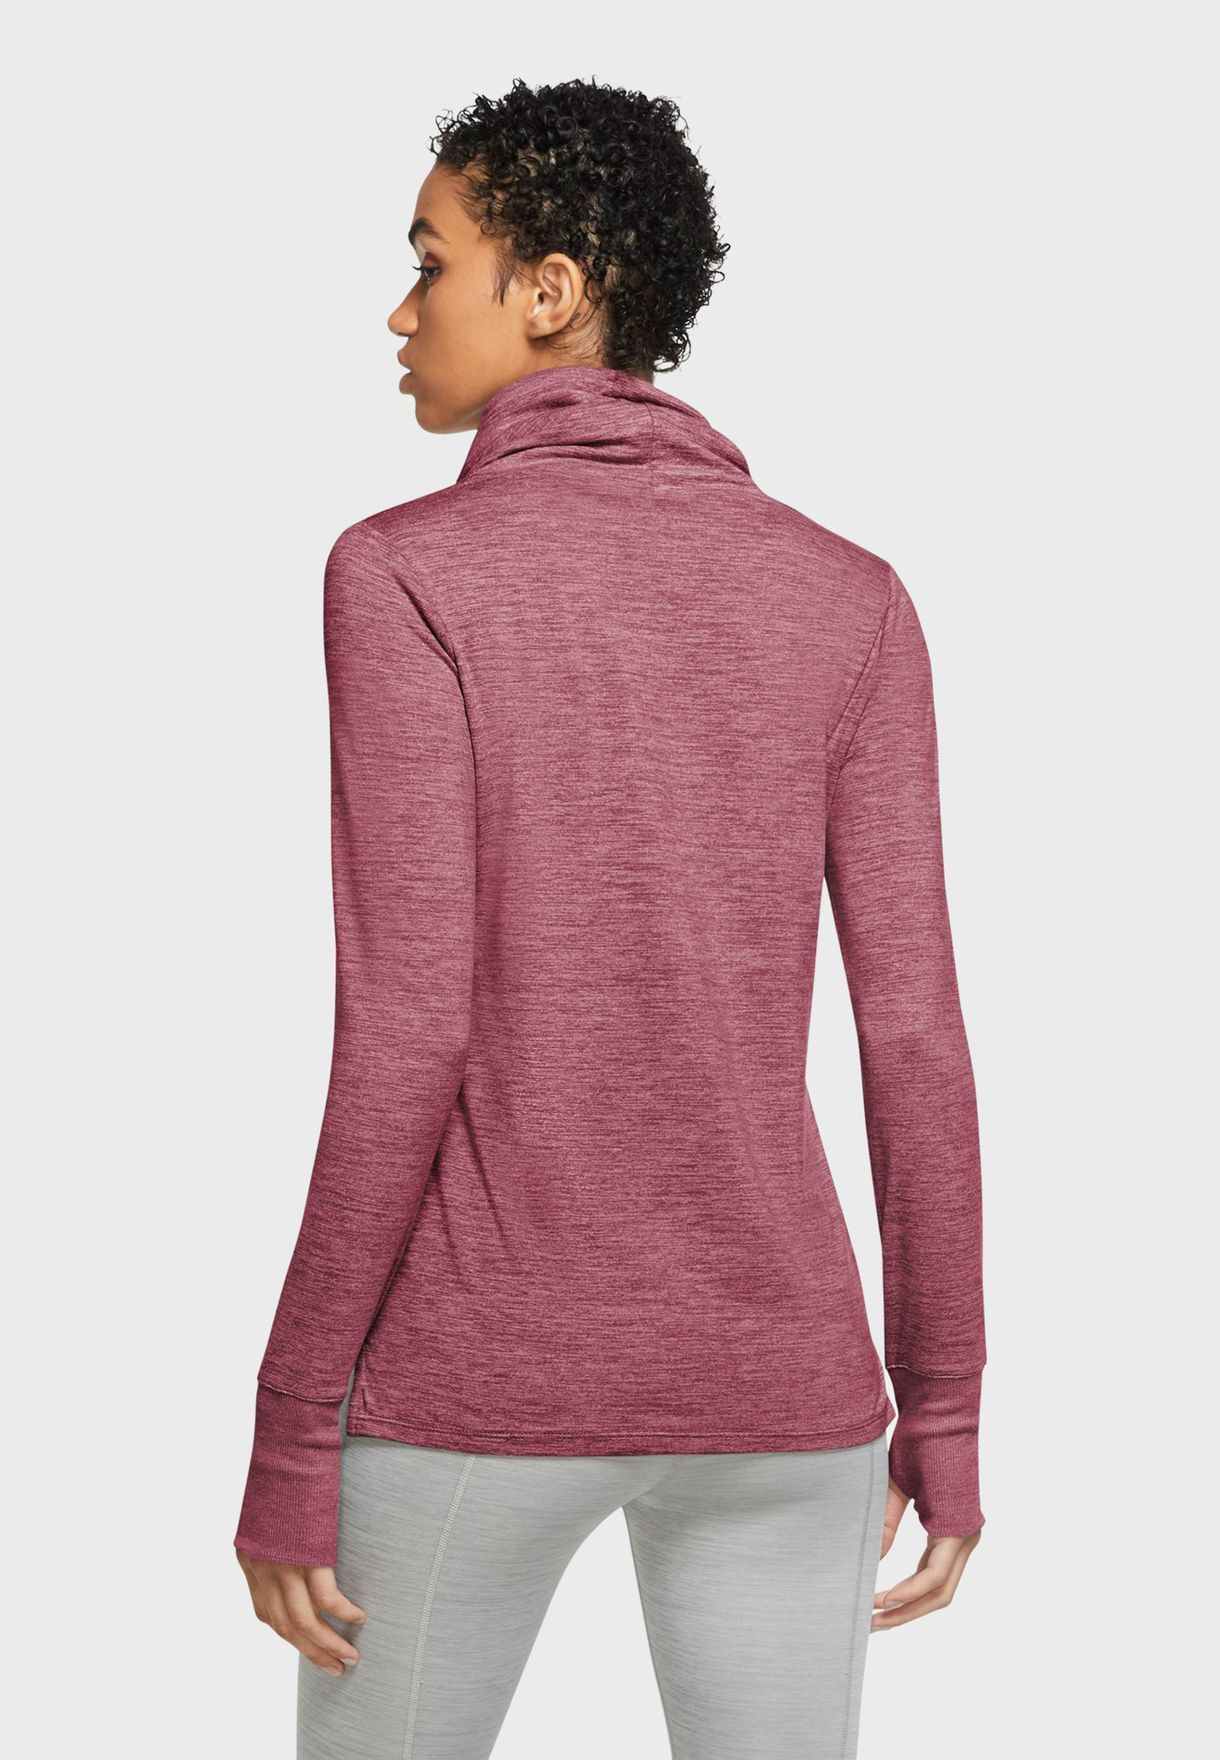 Essential Yoga Core Sweatshirt